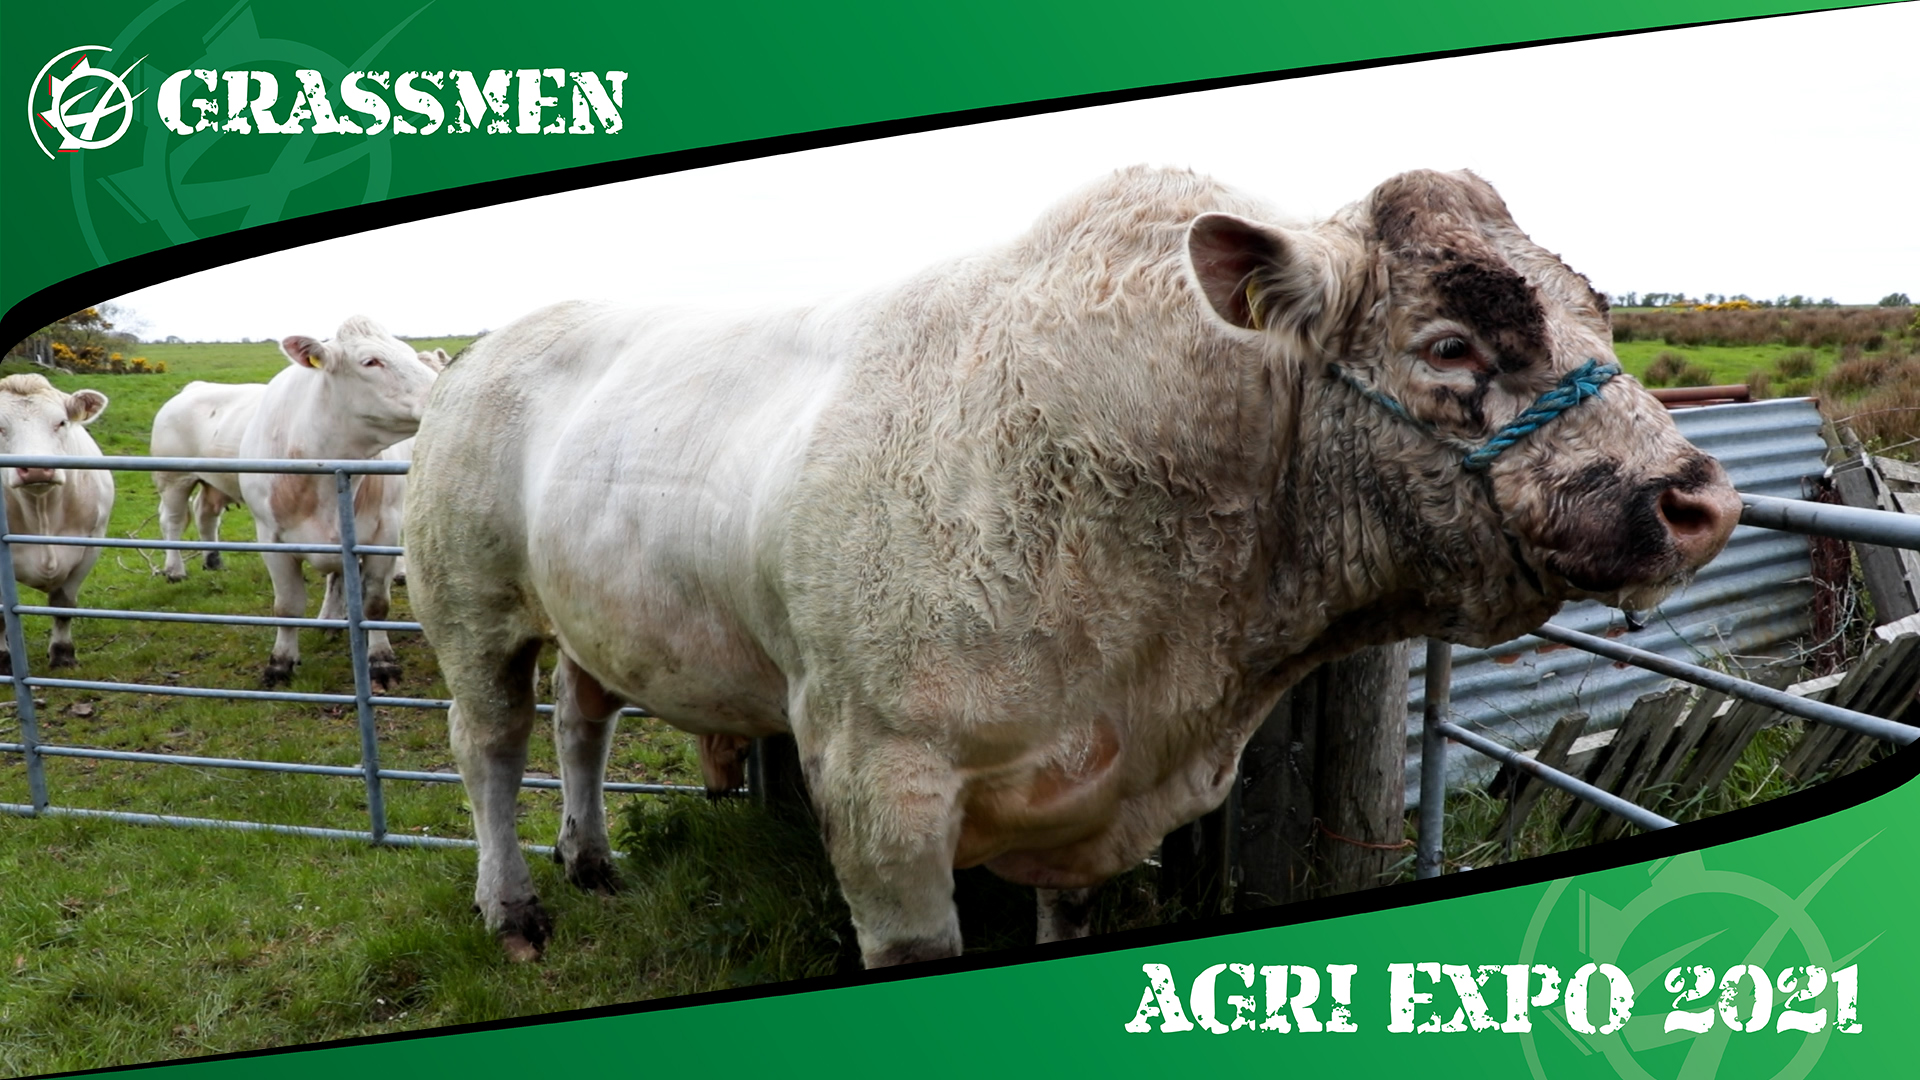 CLOUGHER FARM BEEF CATTLE - GRASSMEN AGRI EXPO DAY 1